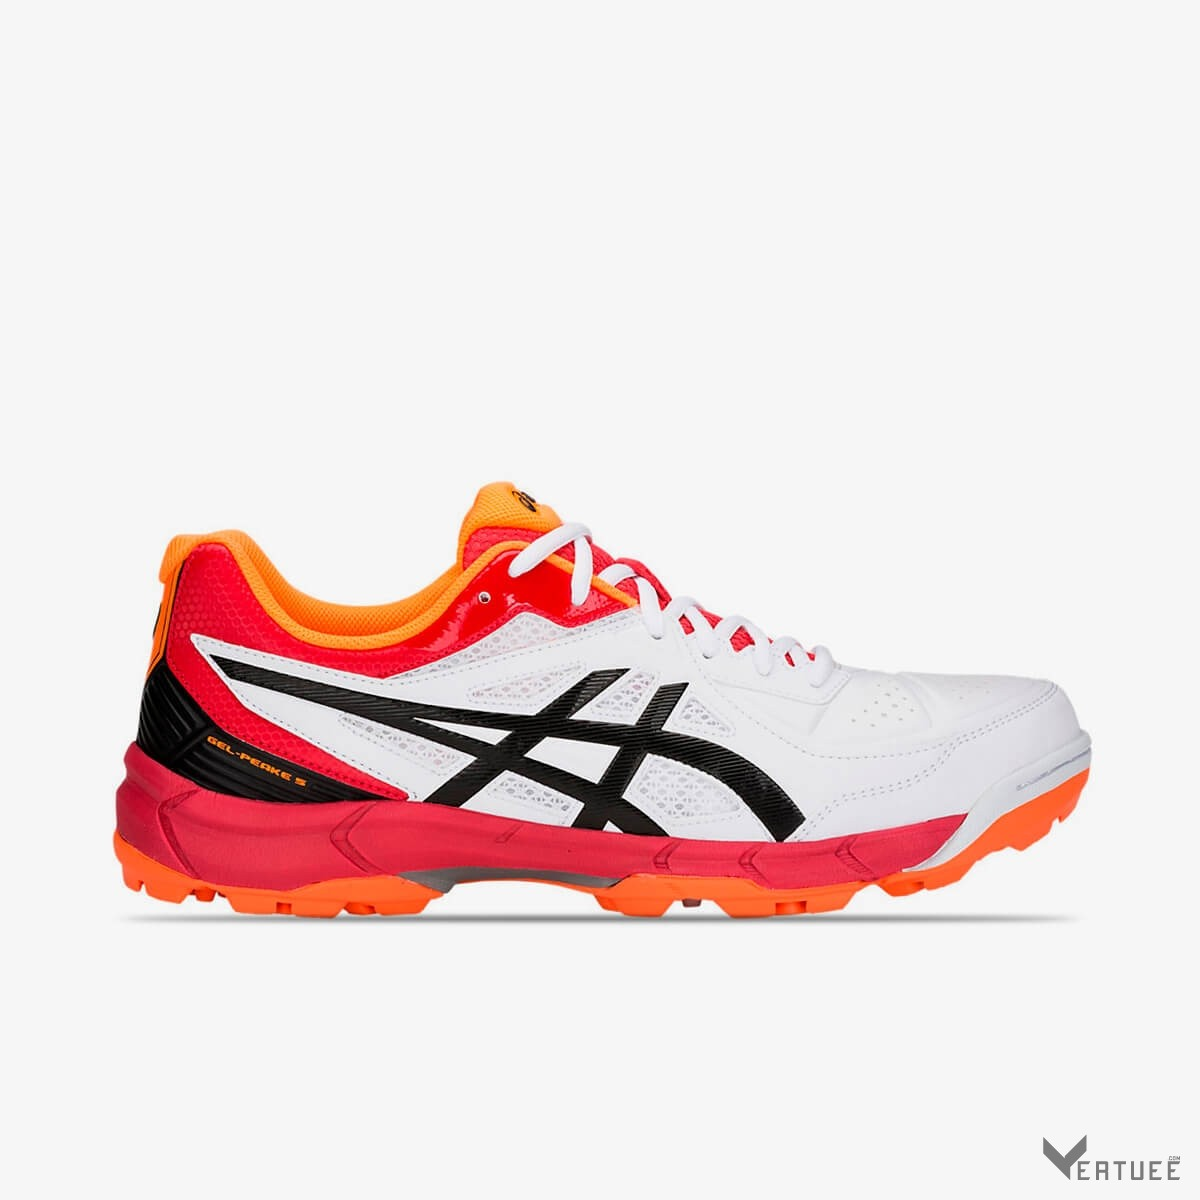 asics cricket shoes rubber spikes